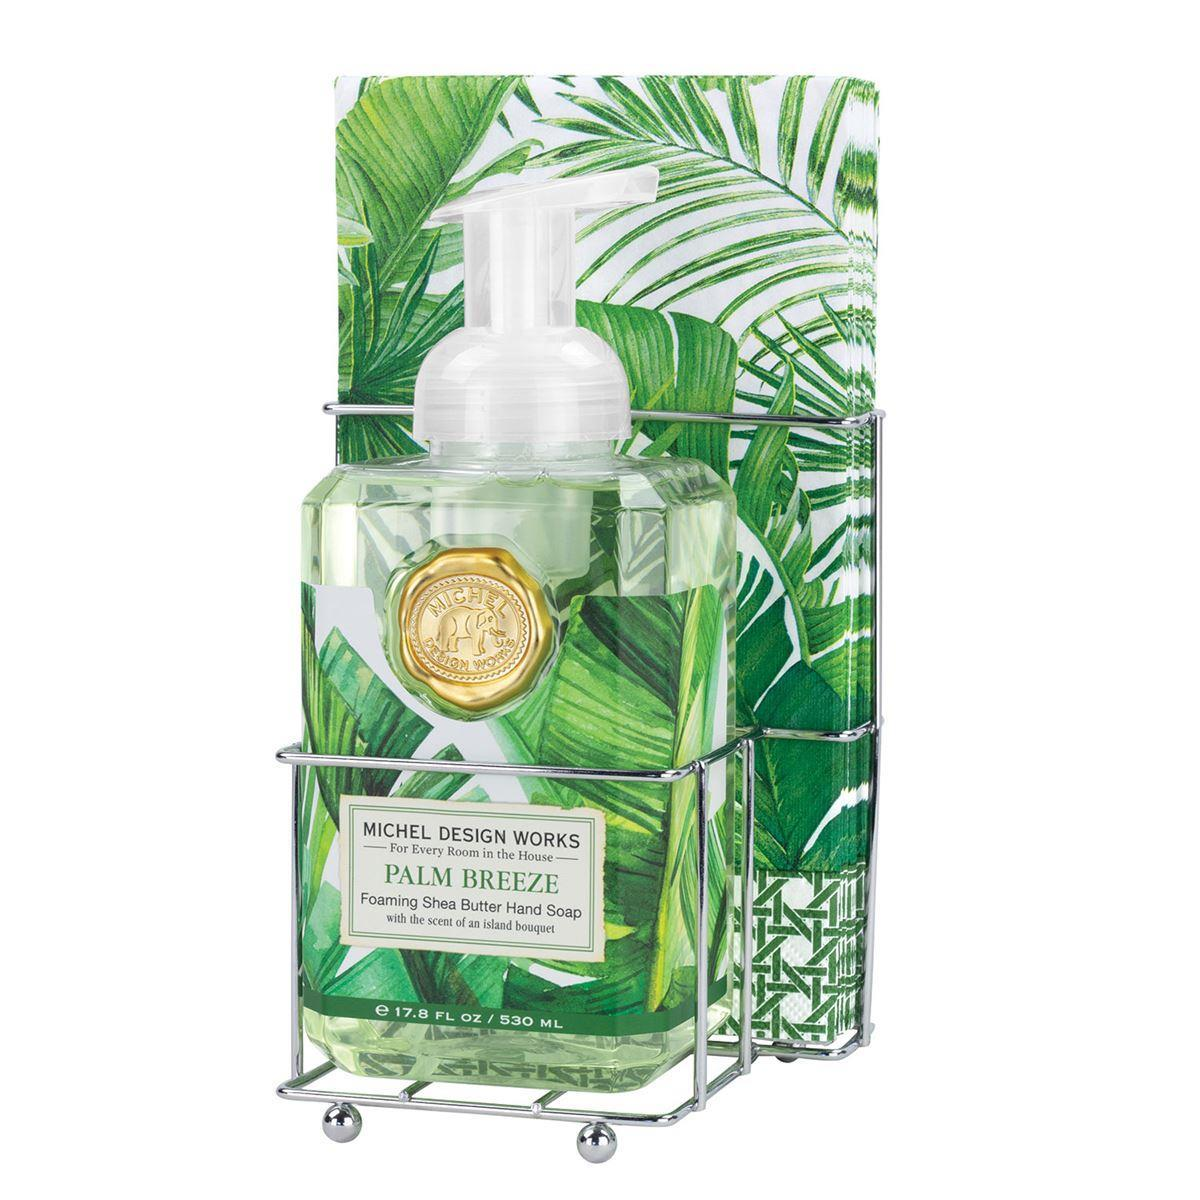 Palm Breeze Foaming Hand Soap Napkin Set - Boutique Marie Dumas